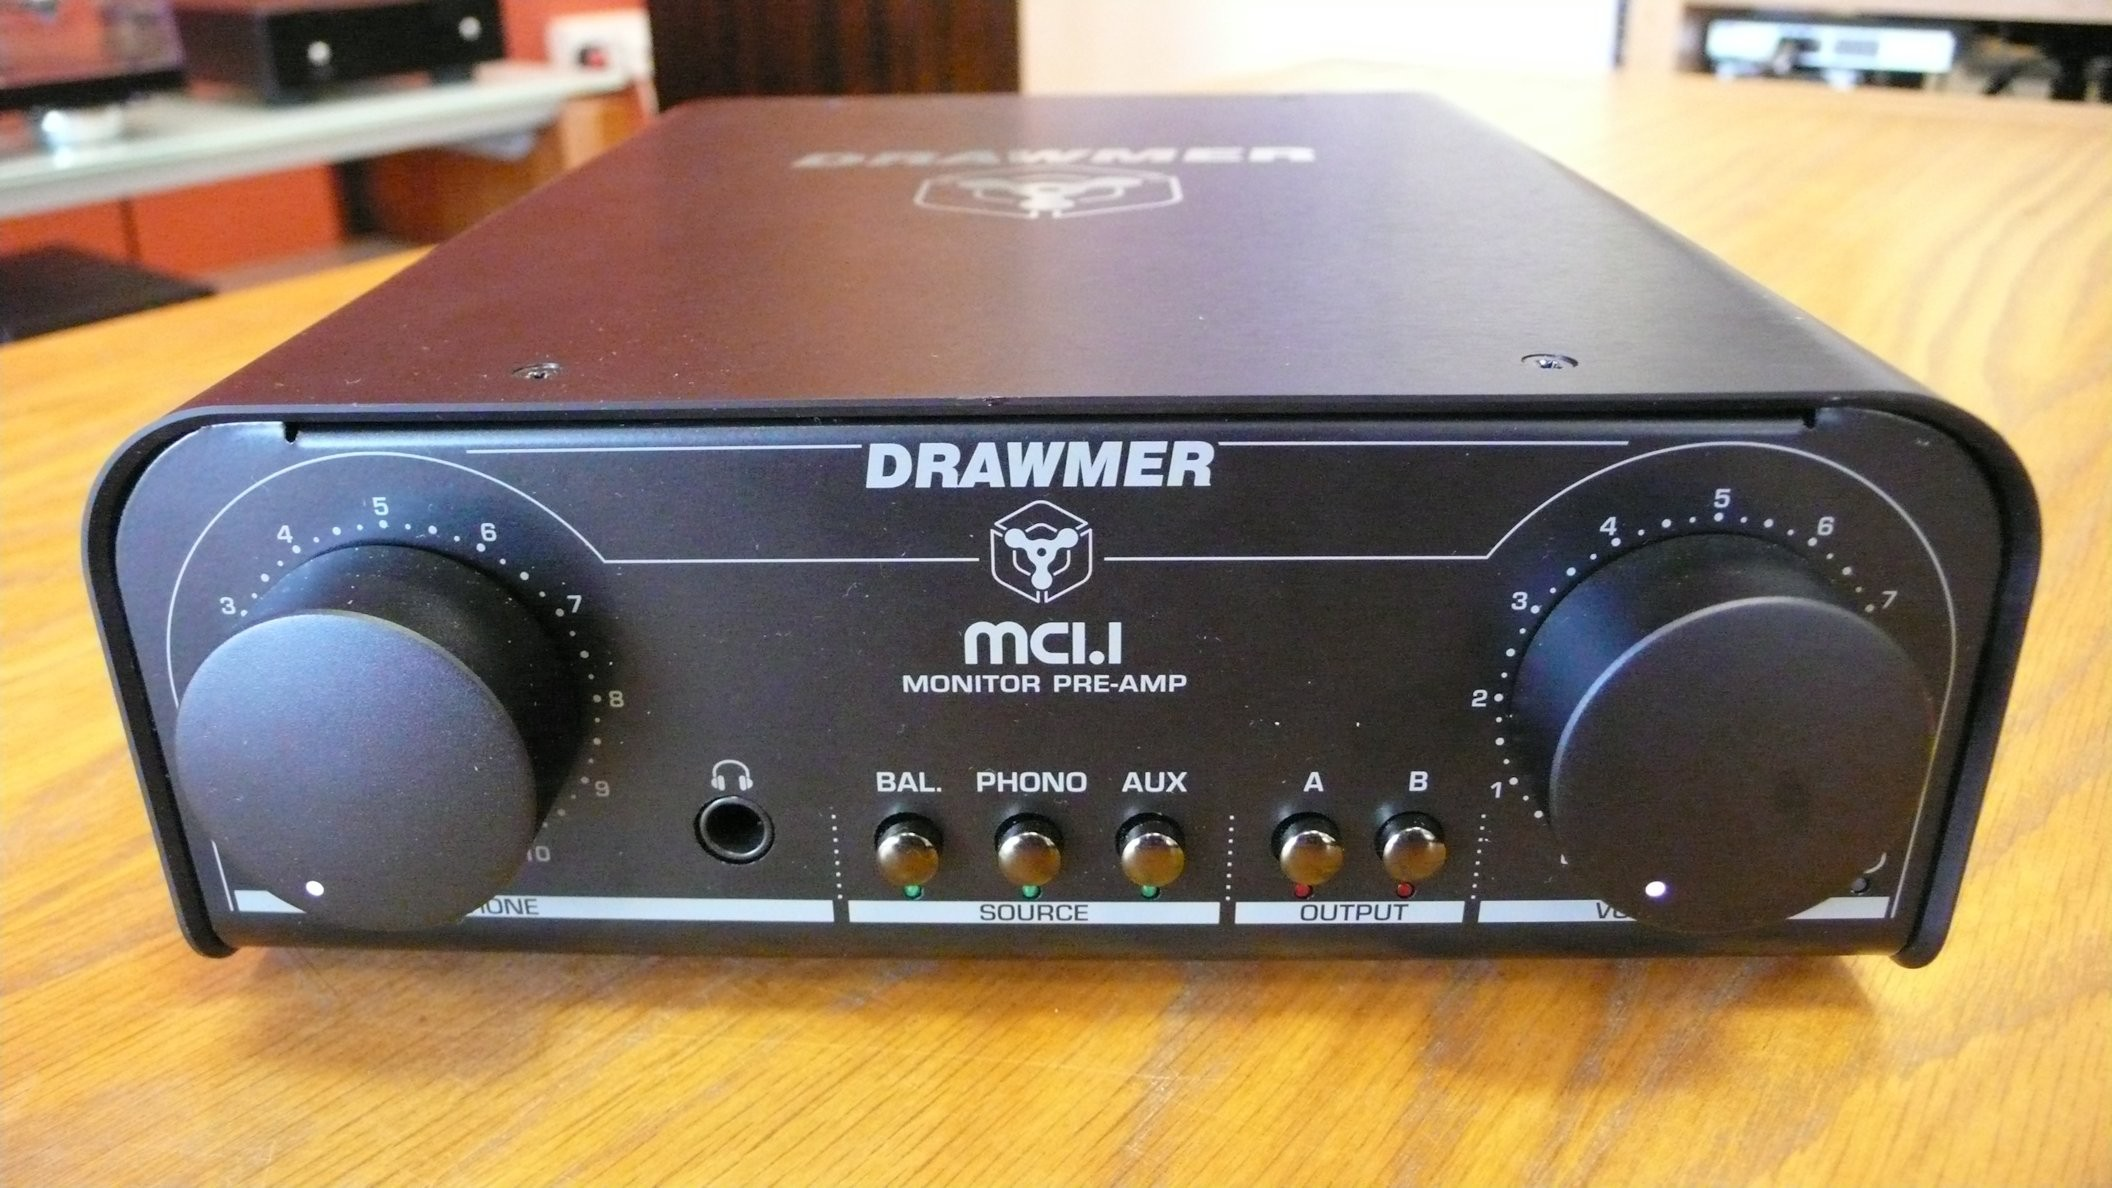 Drawmer MC1.1 Pre/amp phono-stage and headphone amplifier